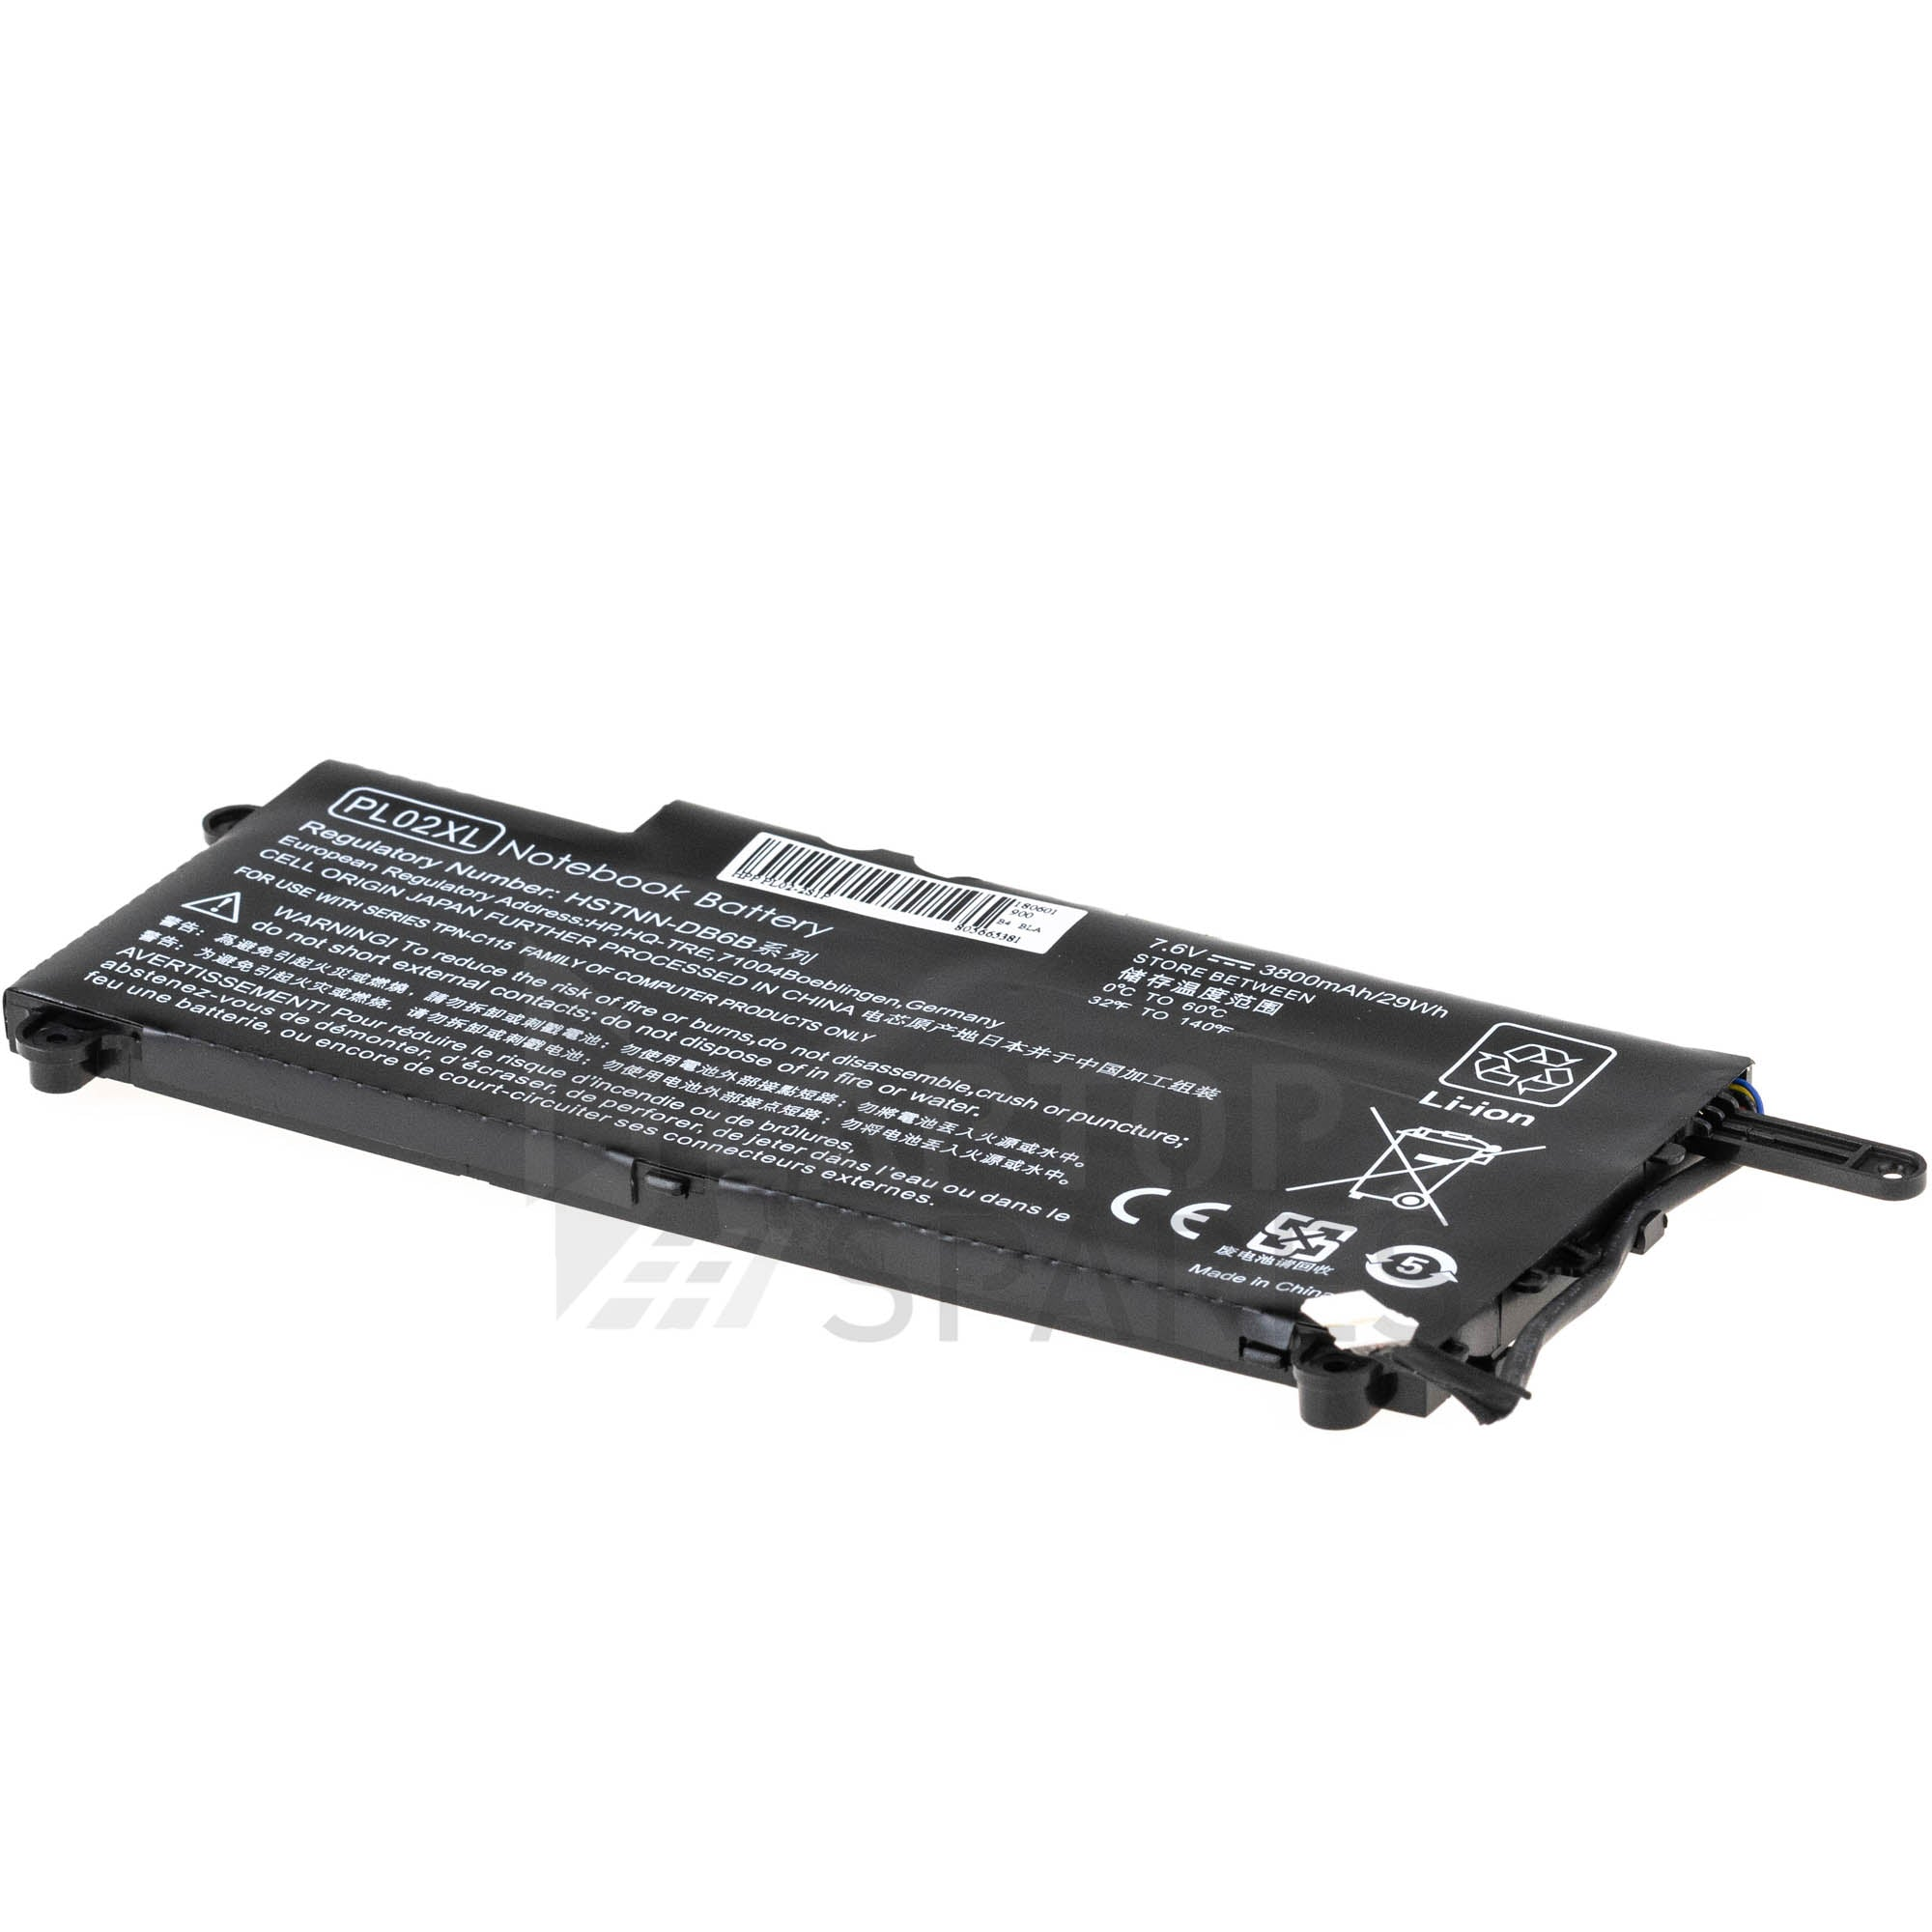 HP HSTNN-LB6B PL02X 3800mAh 4 Cell Battery